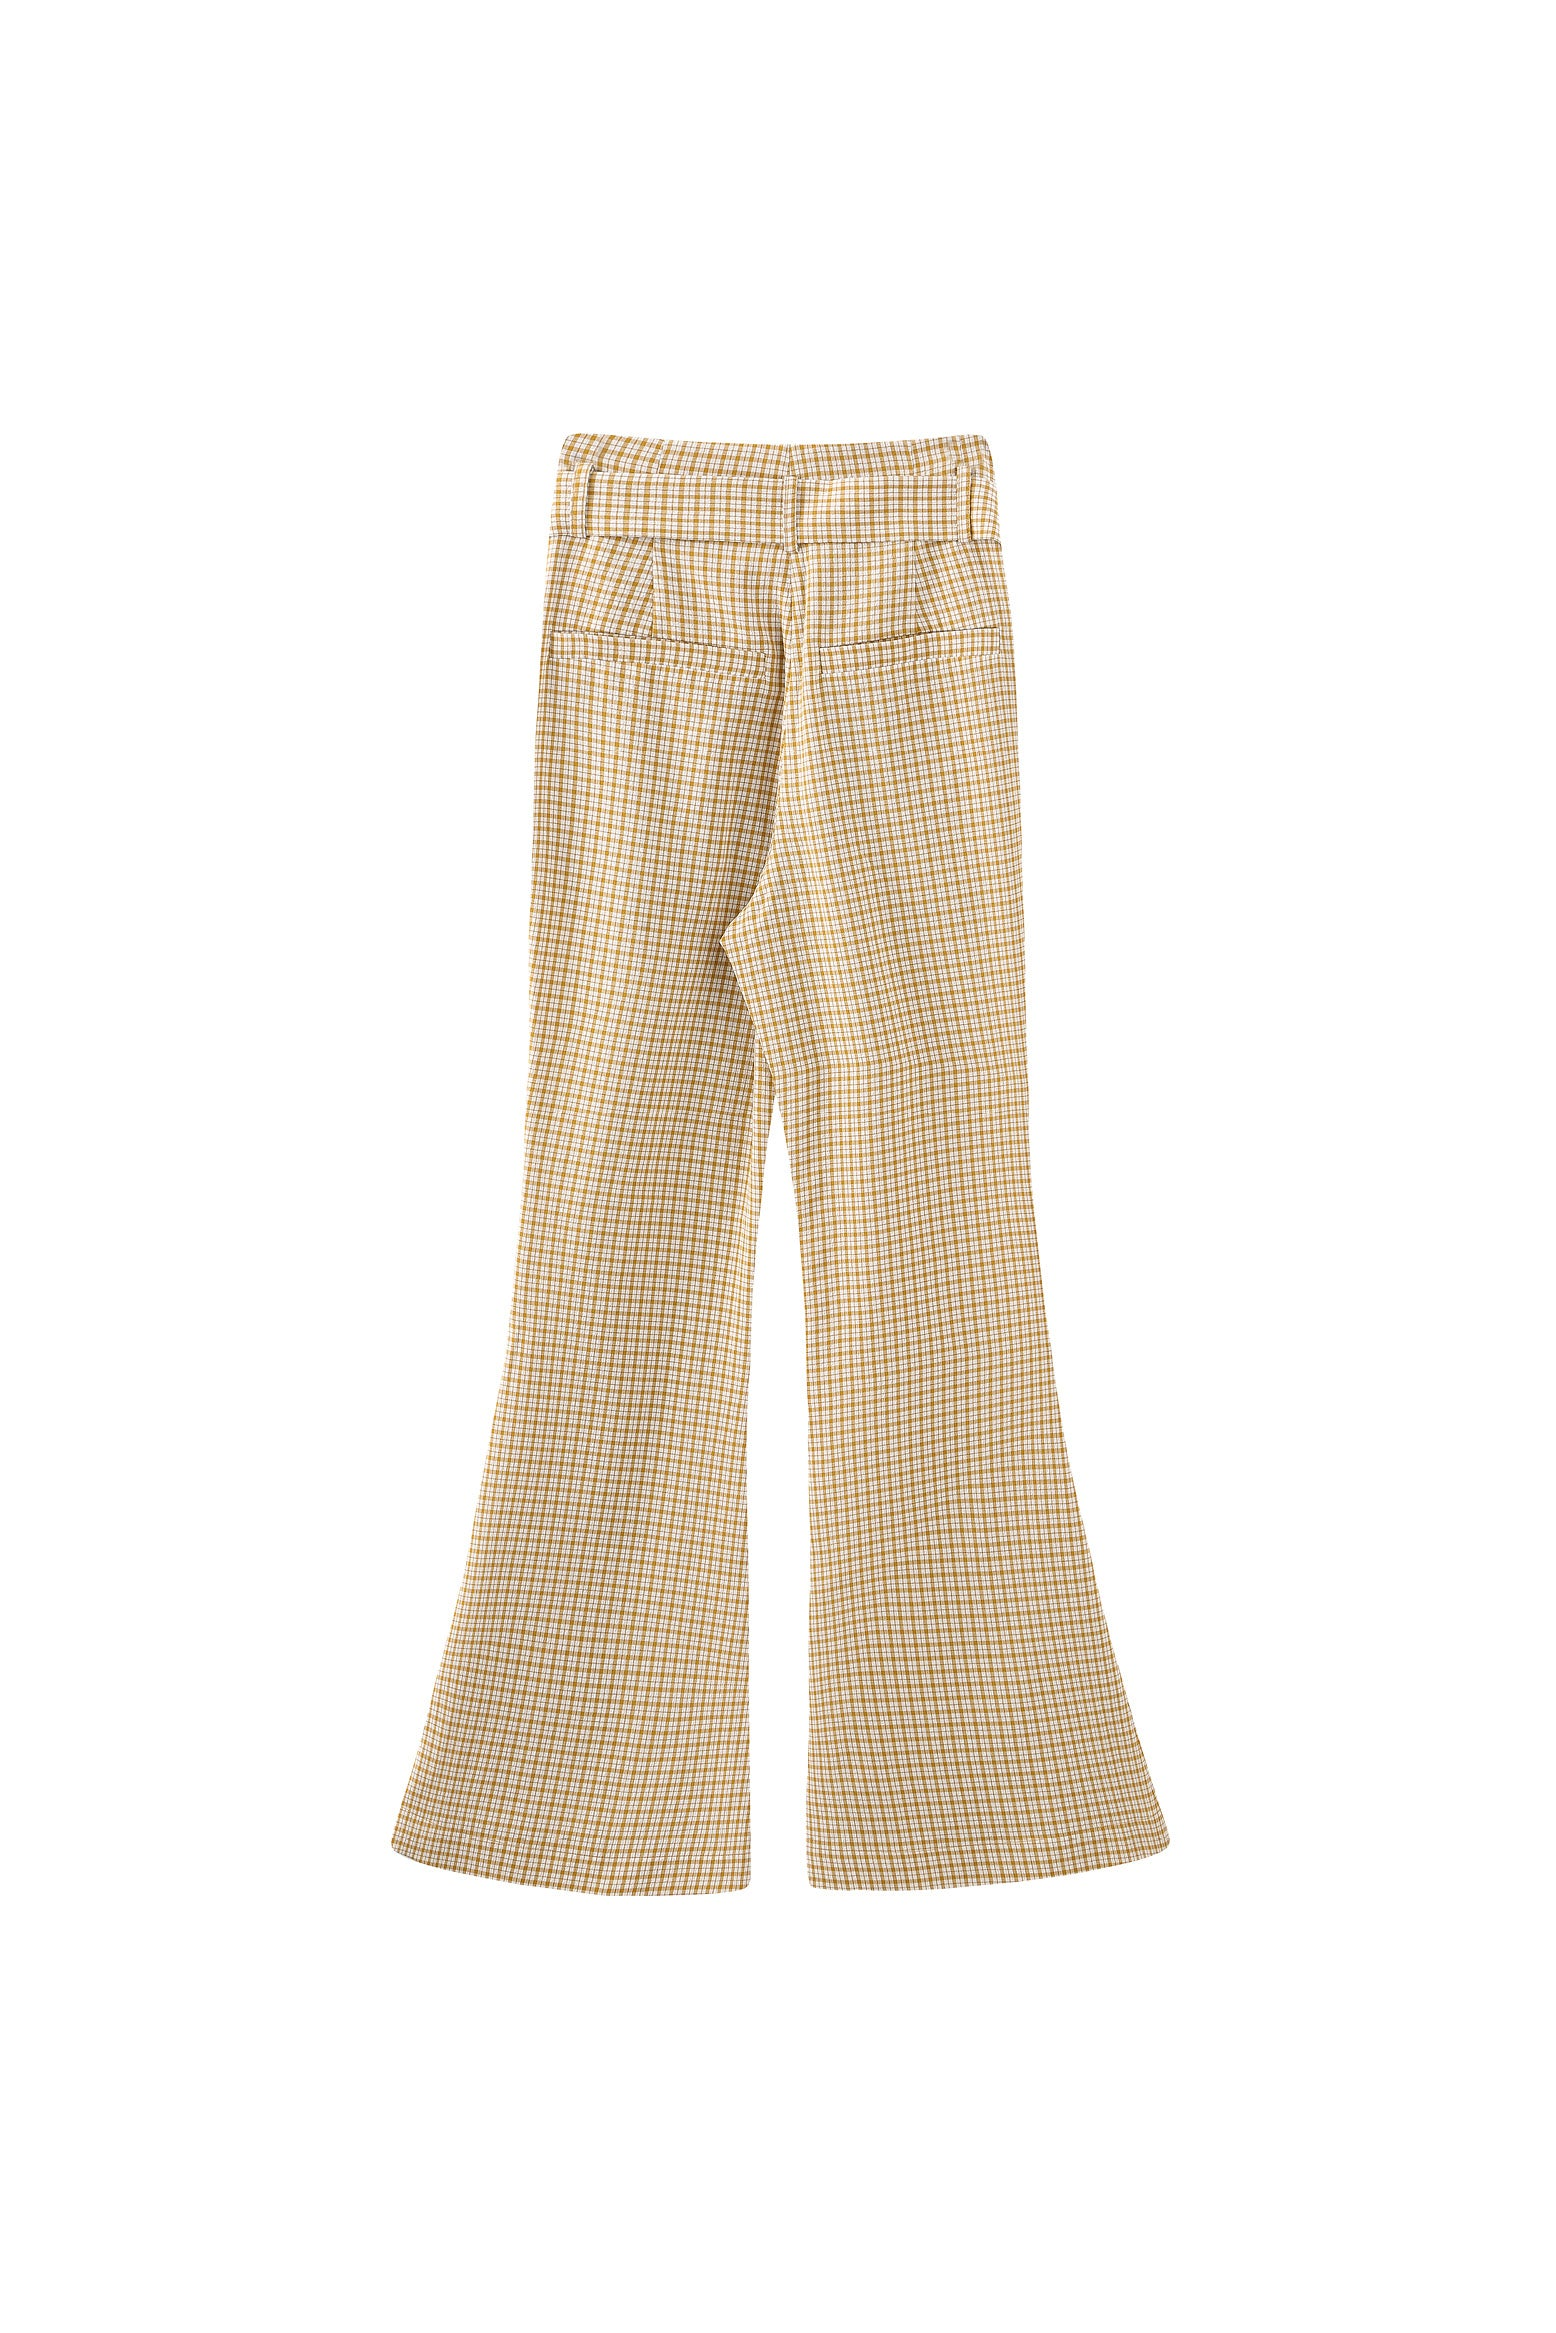 Patty Flare Trousers in Yellow Gingham